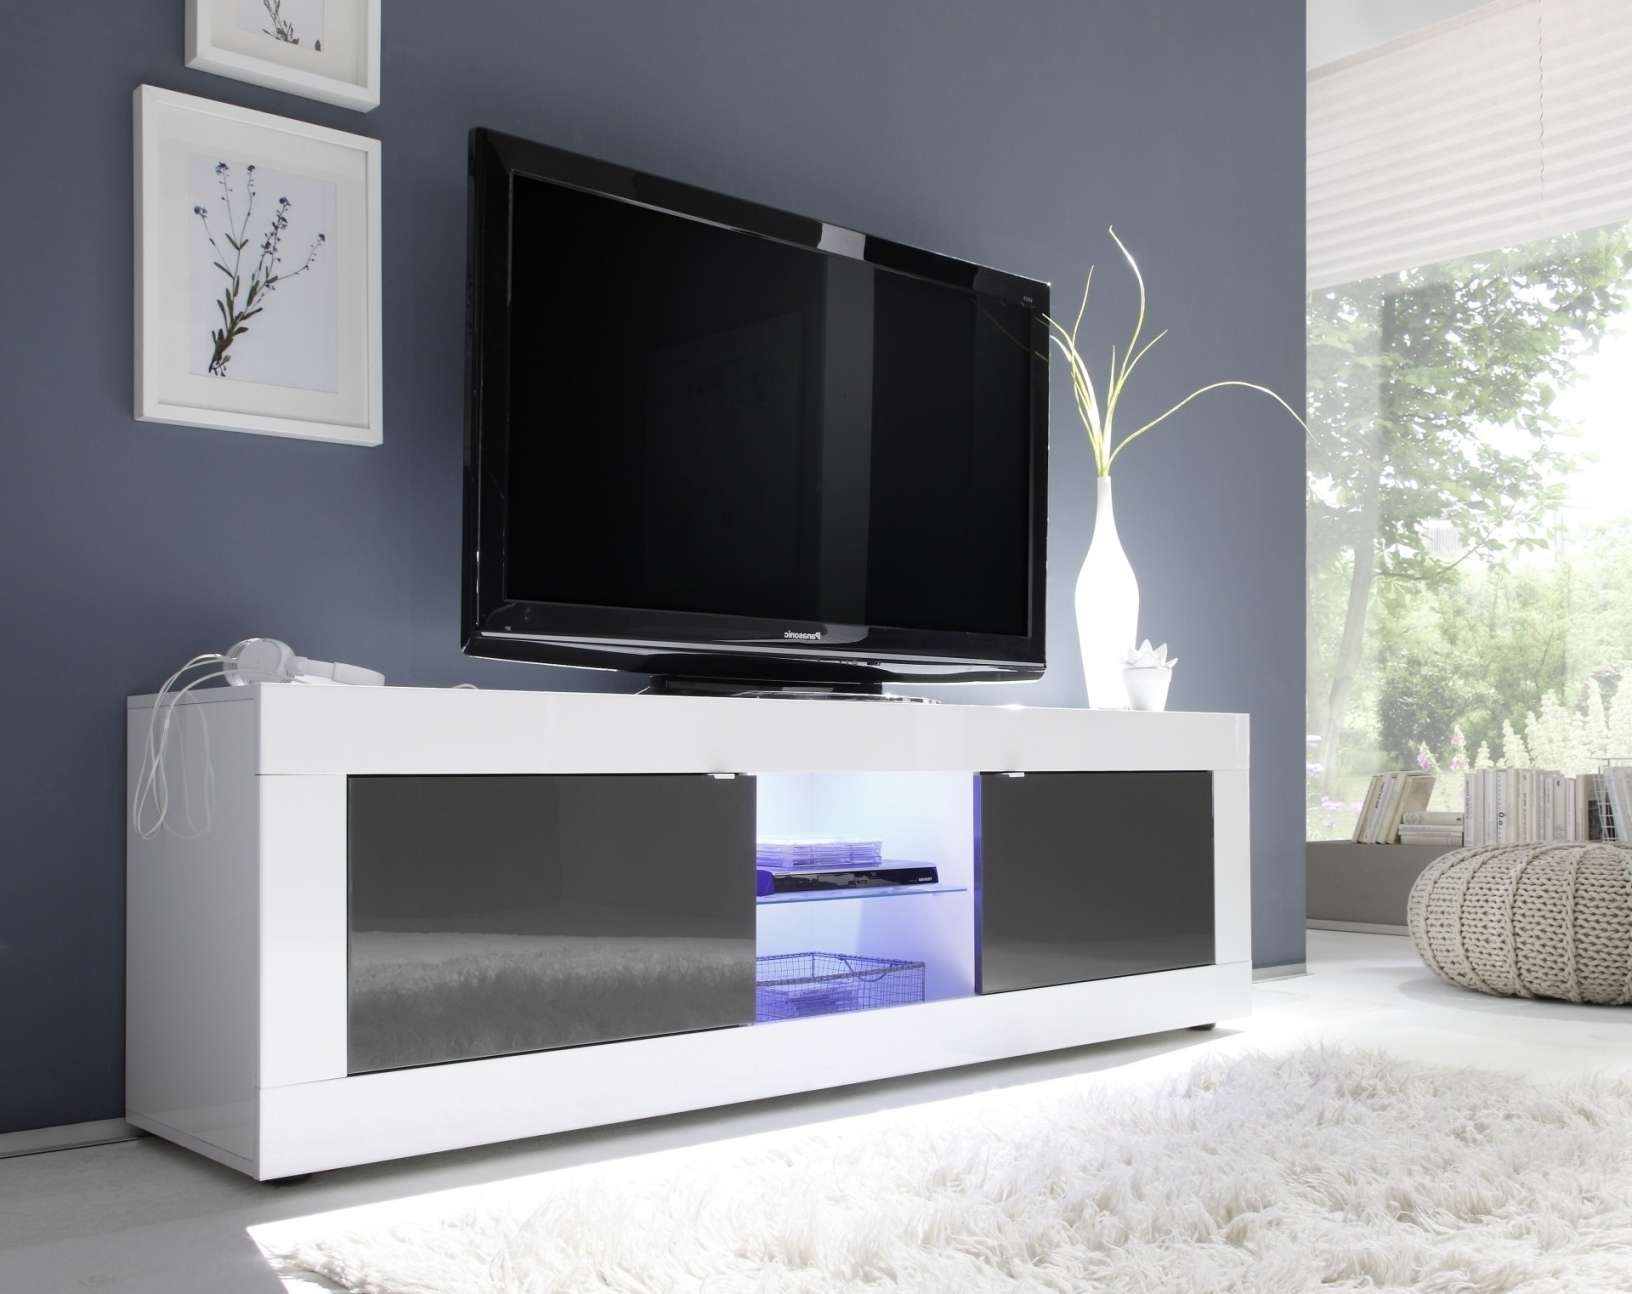 Corner Tv Stand For 60 Inch Flat Screen Tv Inside Tv Stands For 60 Regarding Corner Tv Stands For 60 Inch Flat Screens (View 10 of 15)